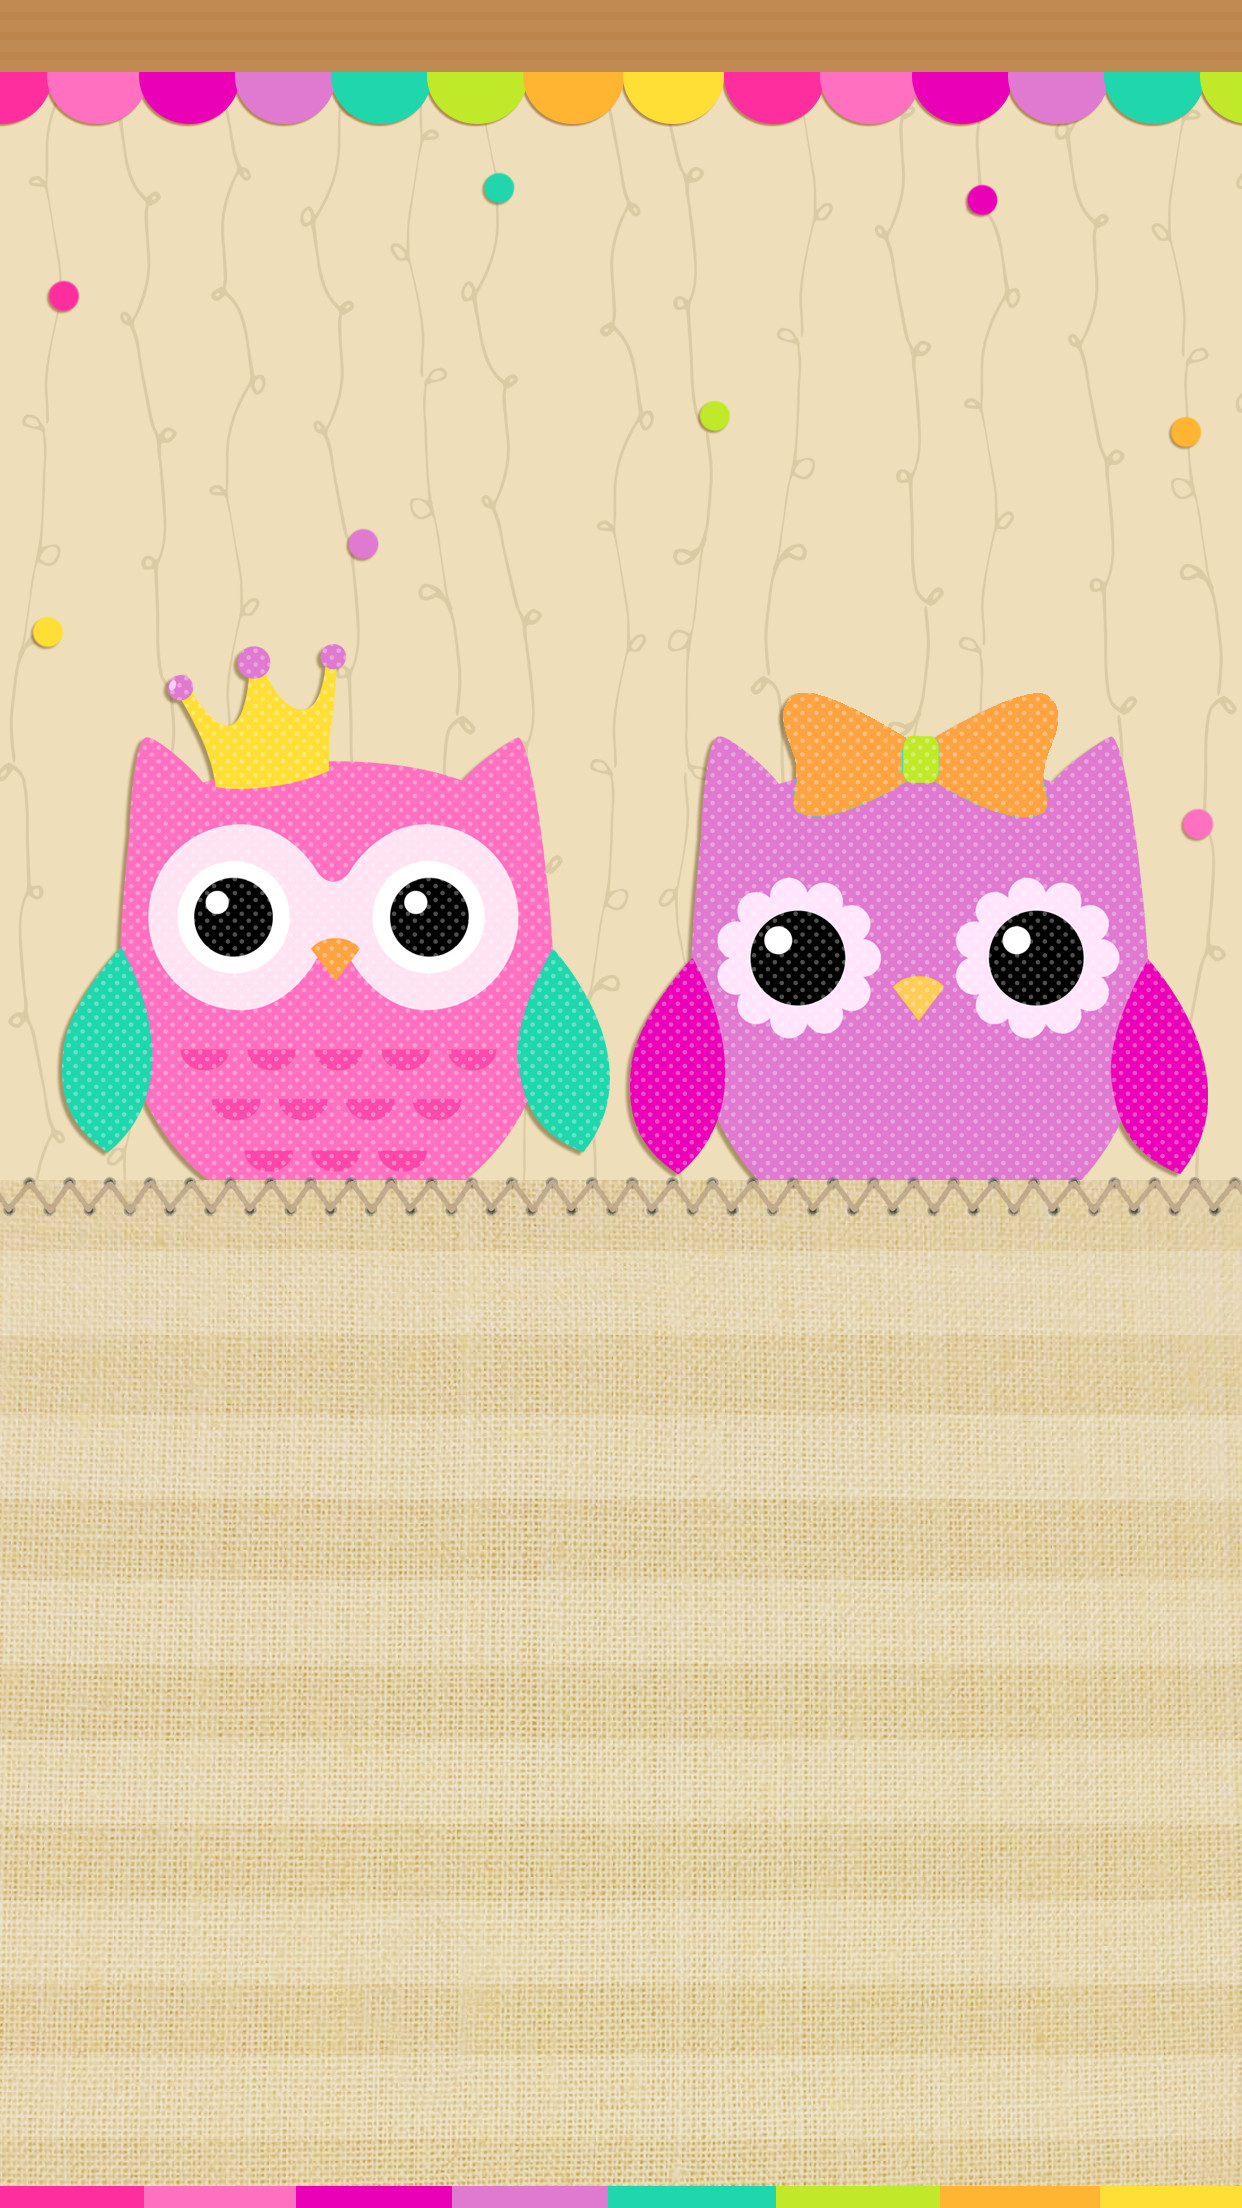 Cute Baby Girl With Guitar Wallpaper Cute Cartoon Owl Wallpaper 54 Images